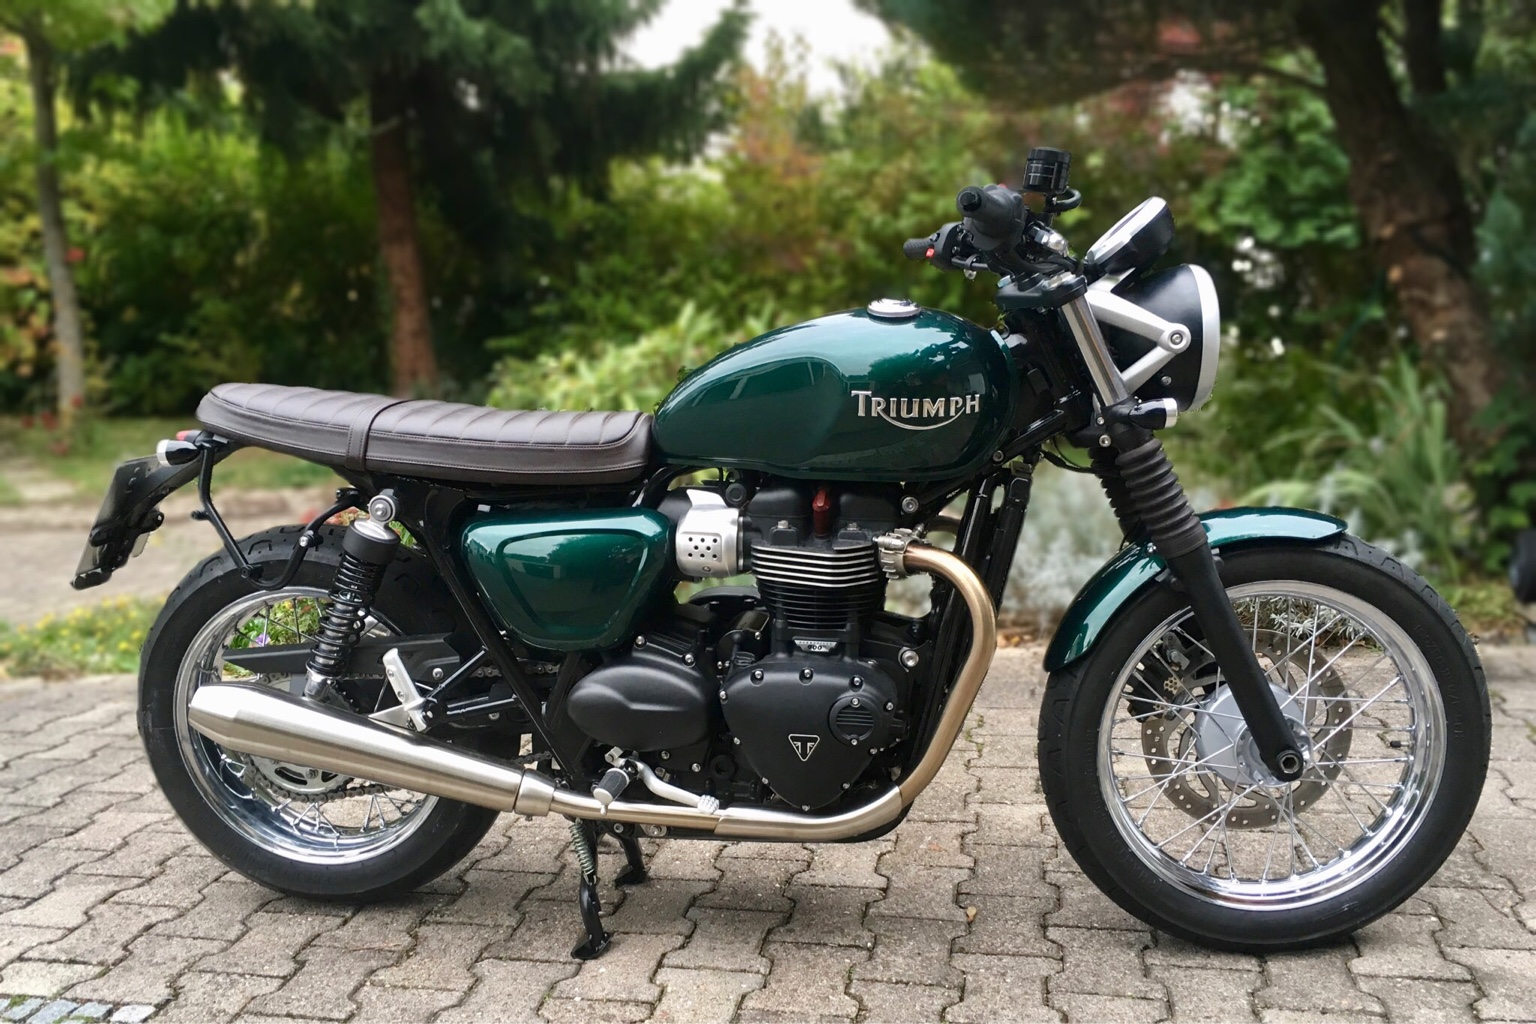 triumph forum triumph rat motorcycle forums view single post removing triumph decal on. Black Bedroom Furniture Sets. Home Design Ideas